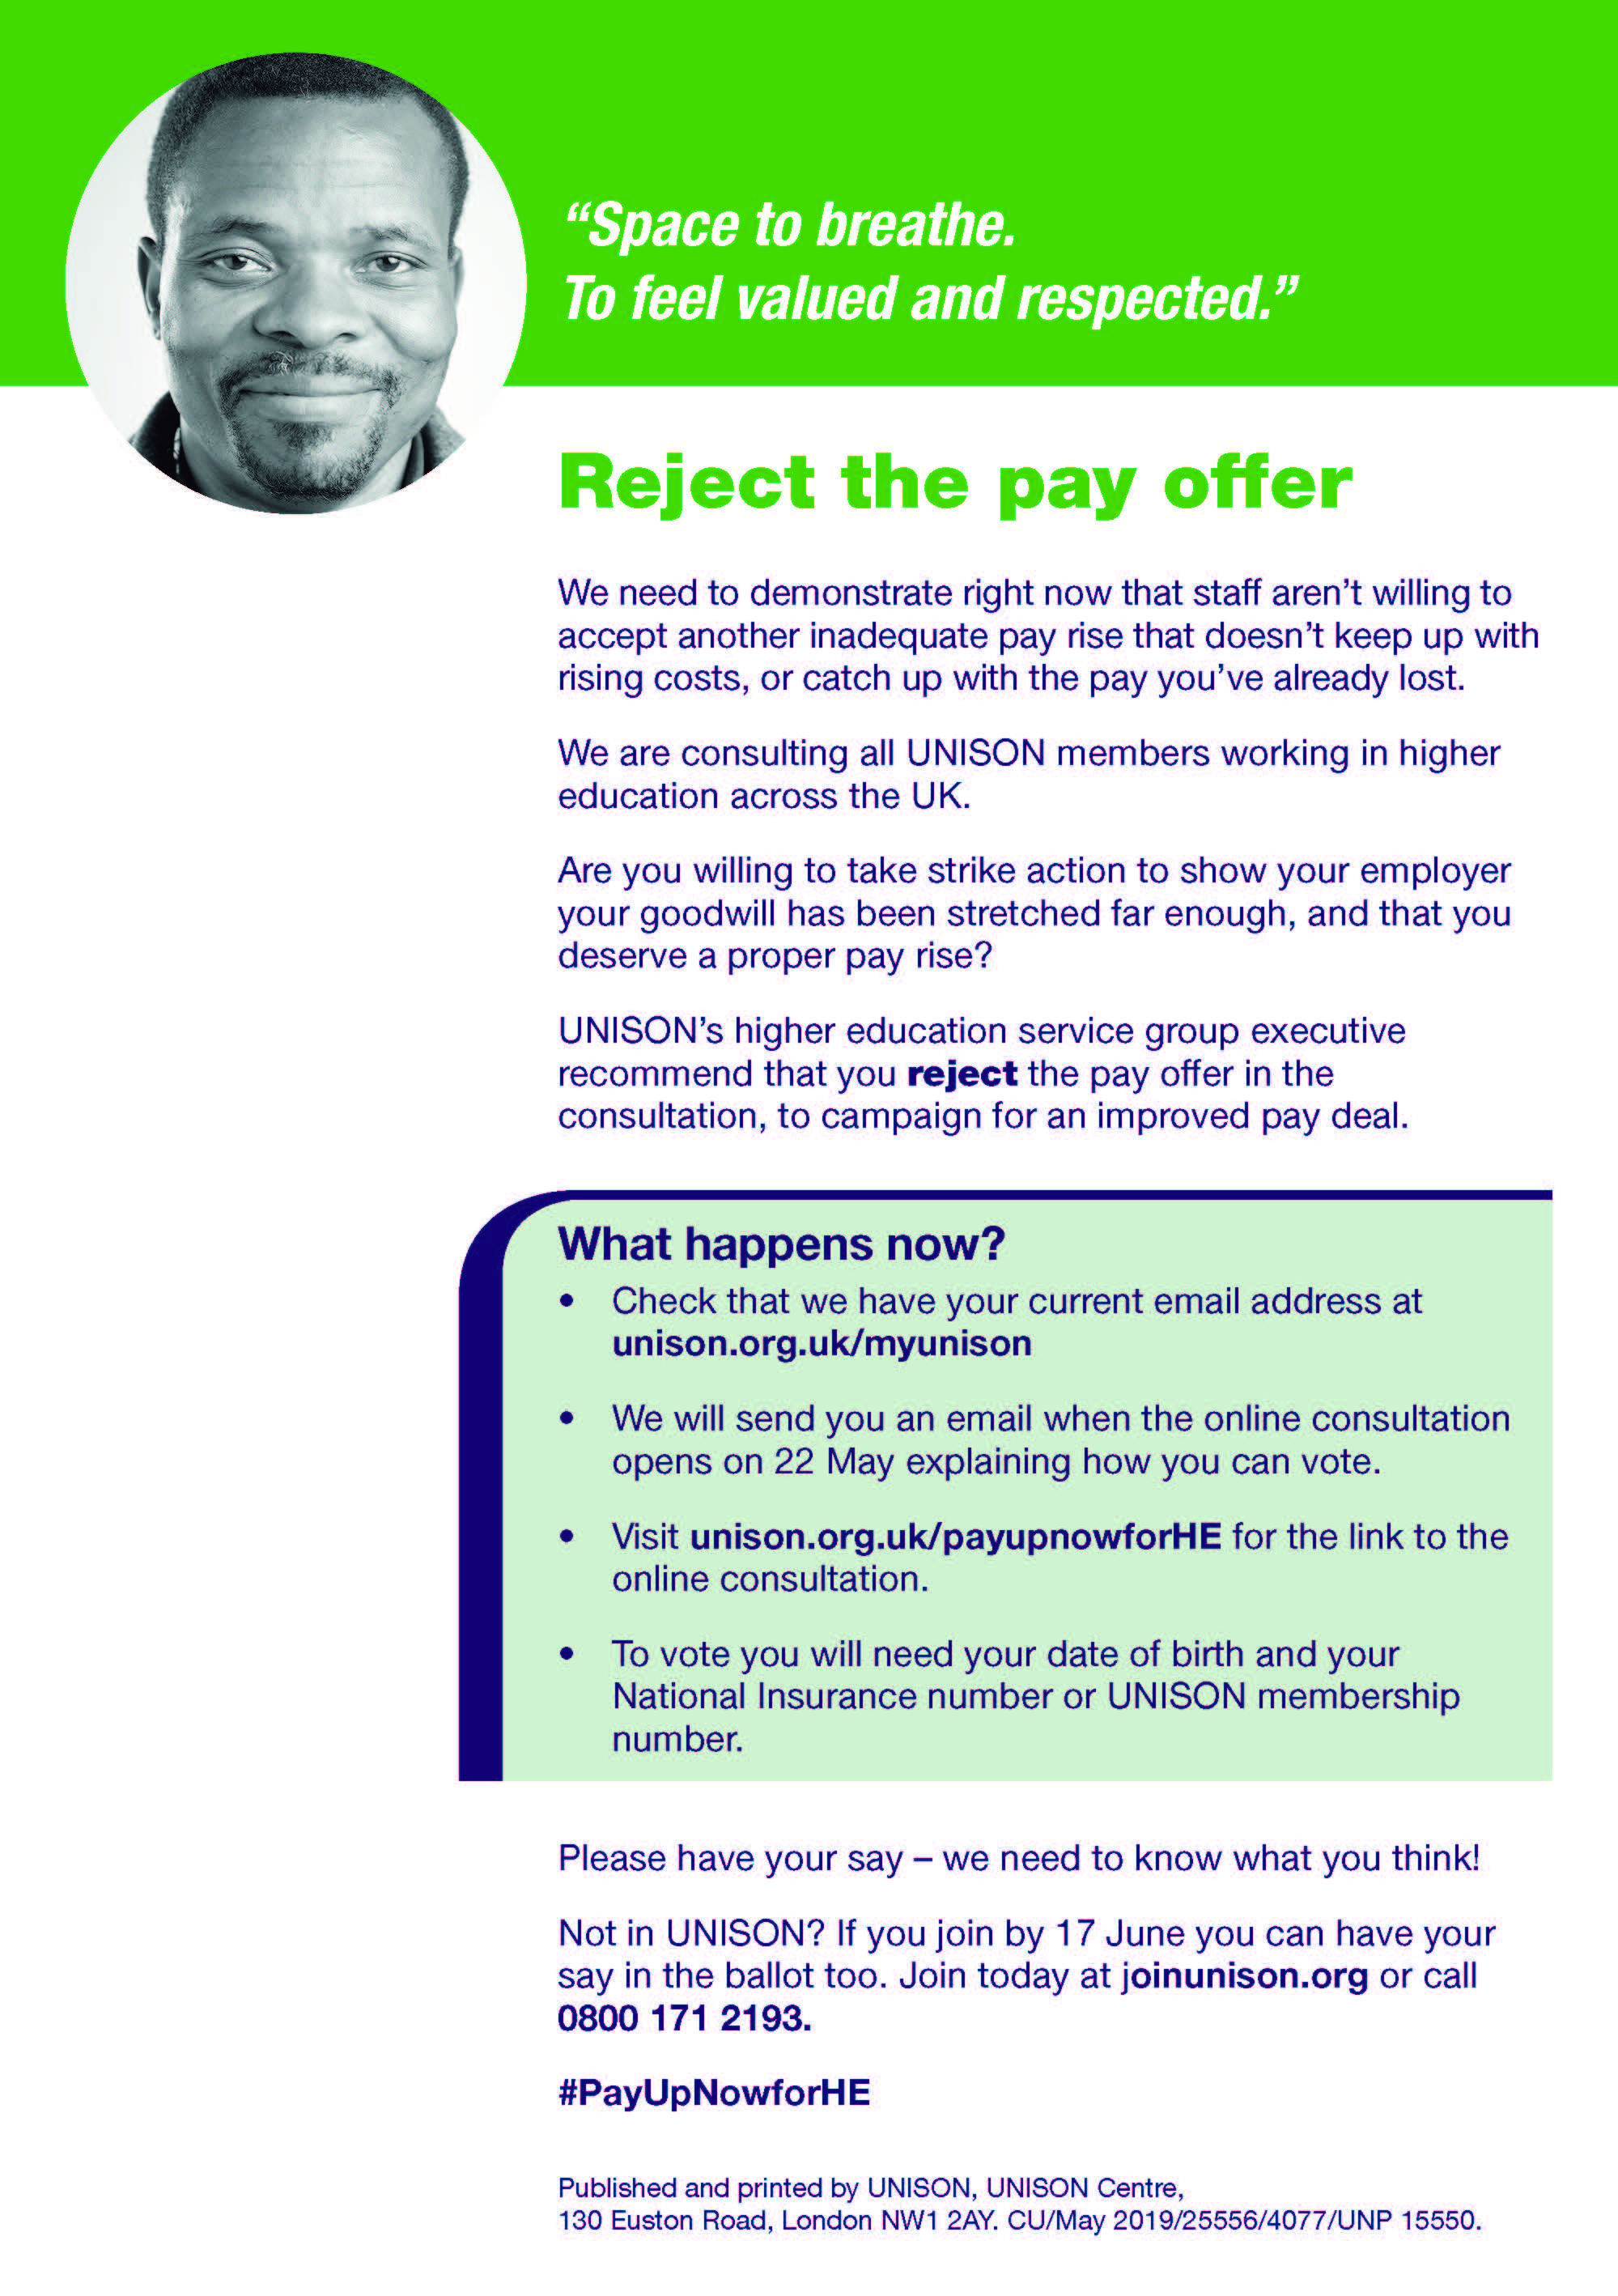 PAY LEAFLET 16 05 19_Page_2